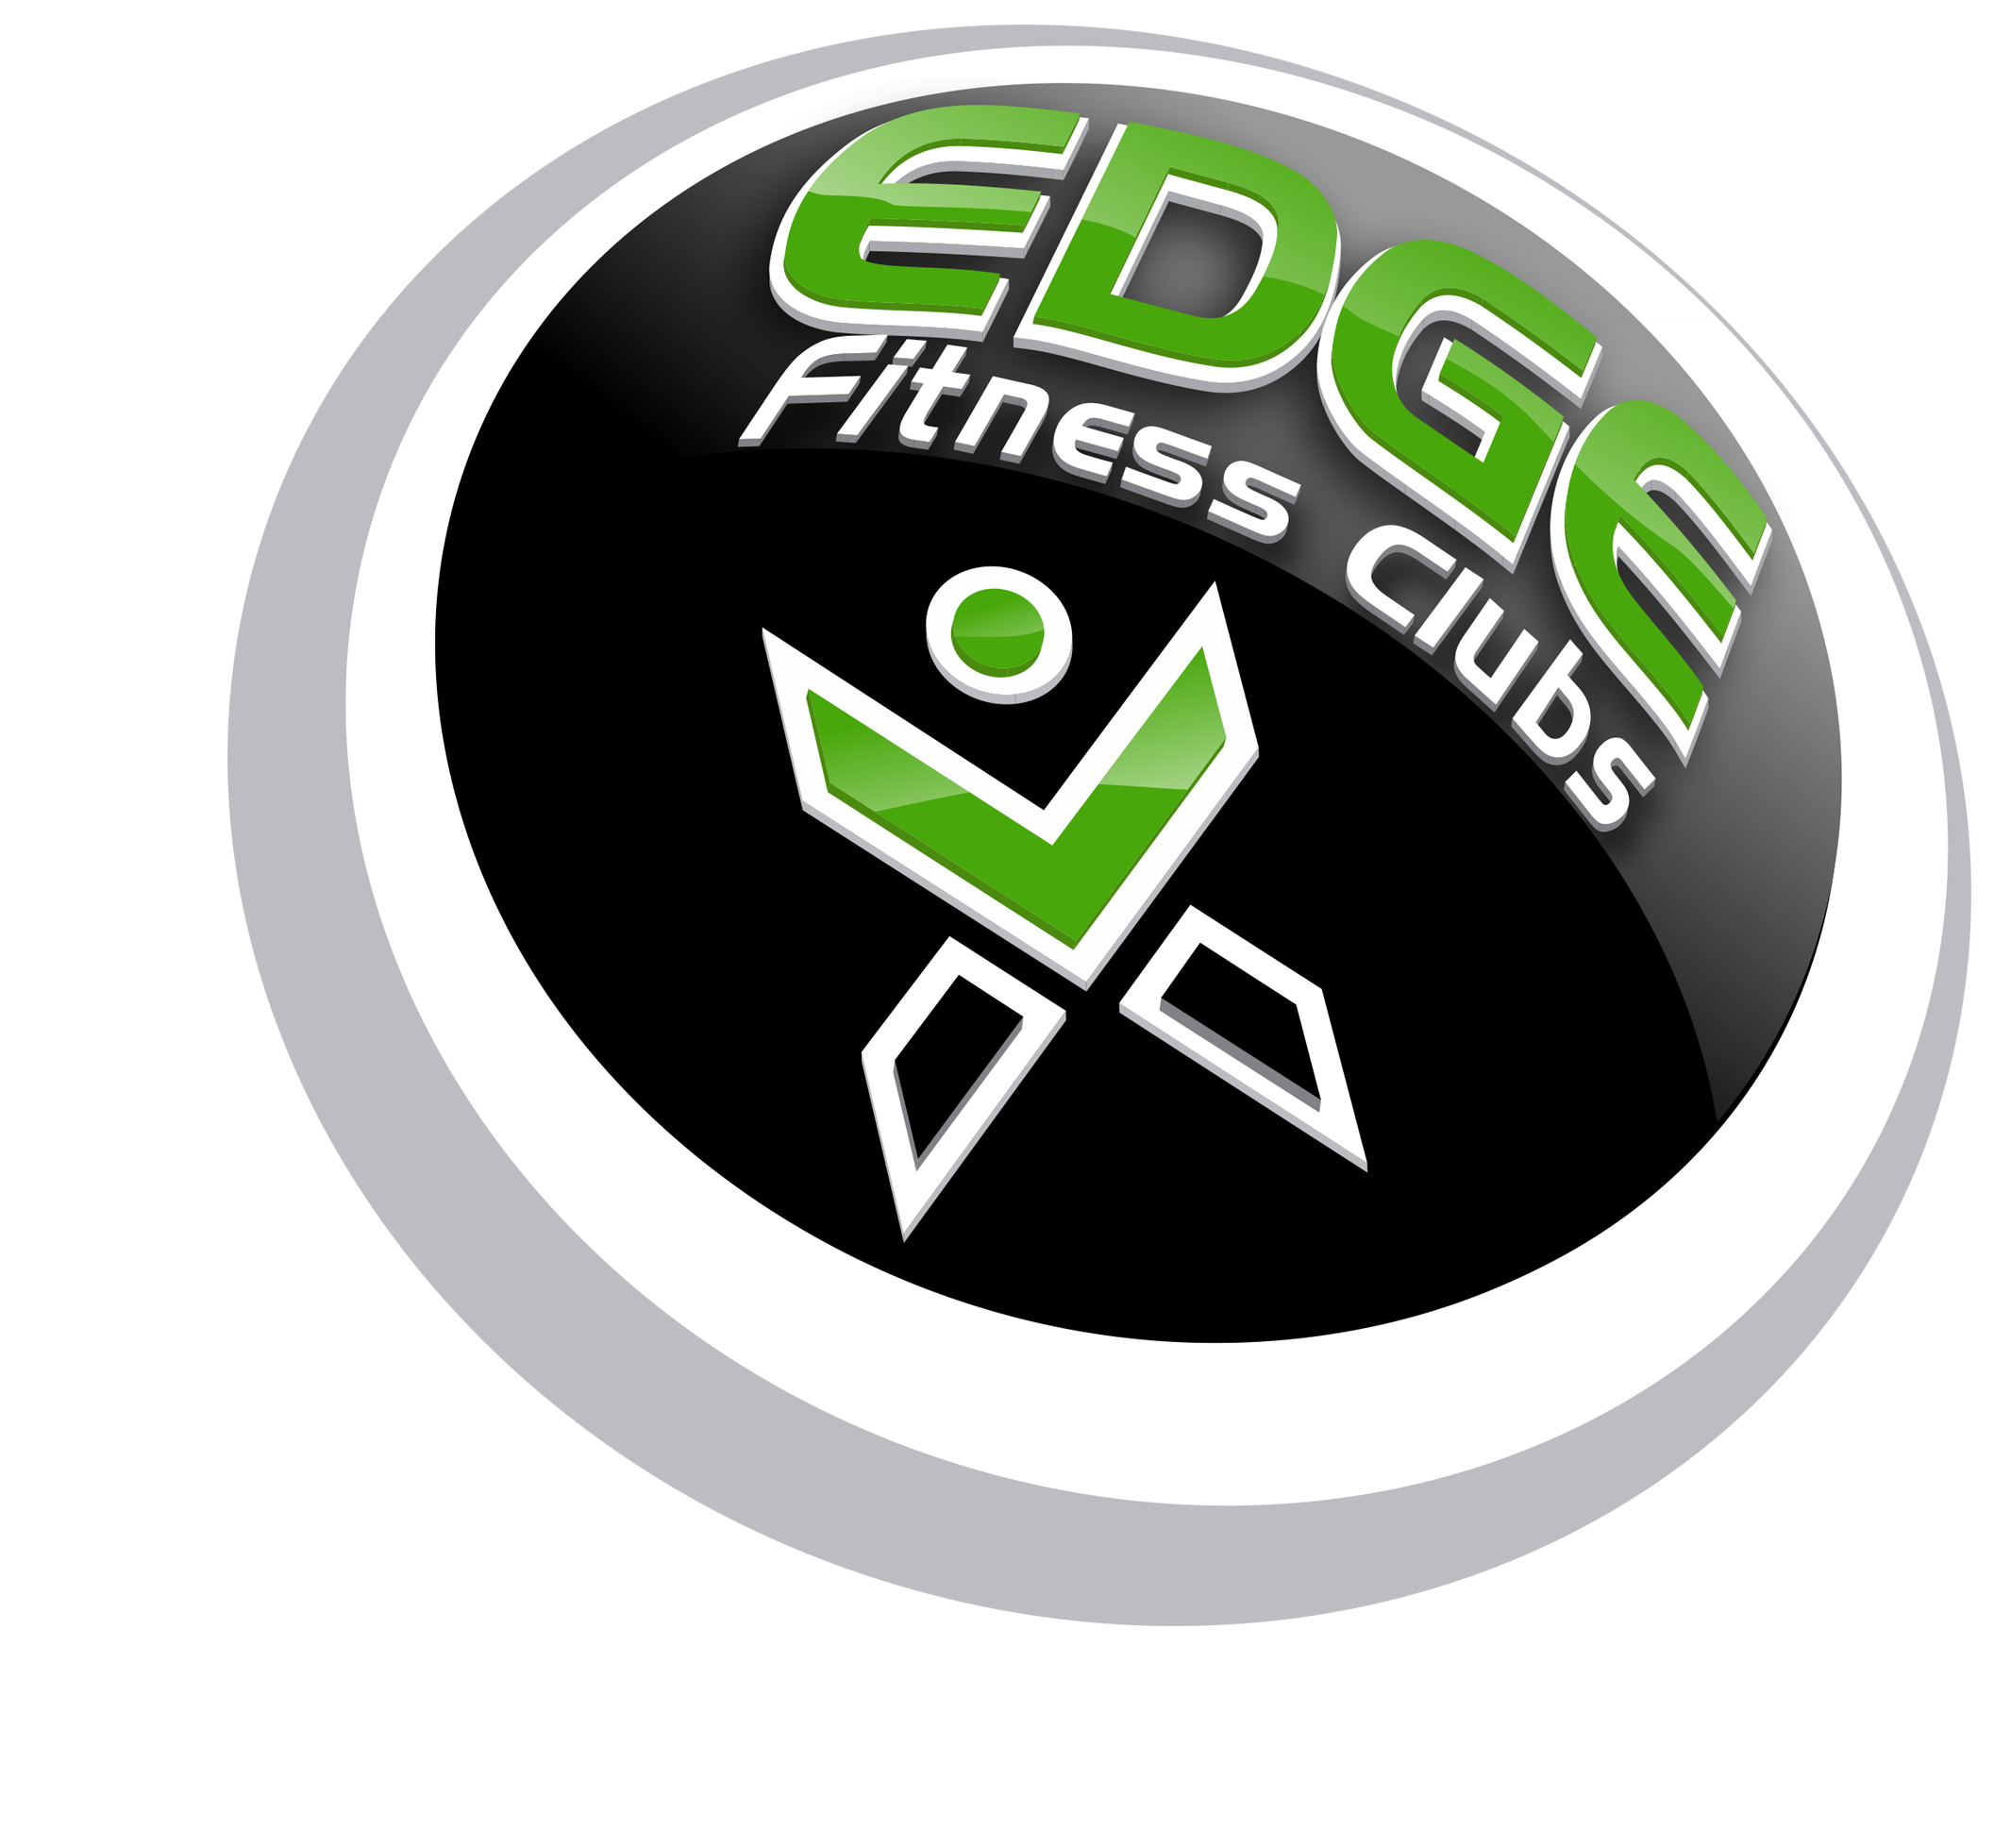 Edge Fitness Clubs